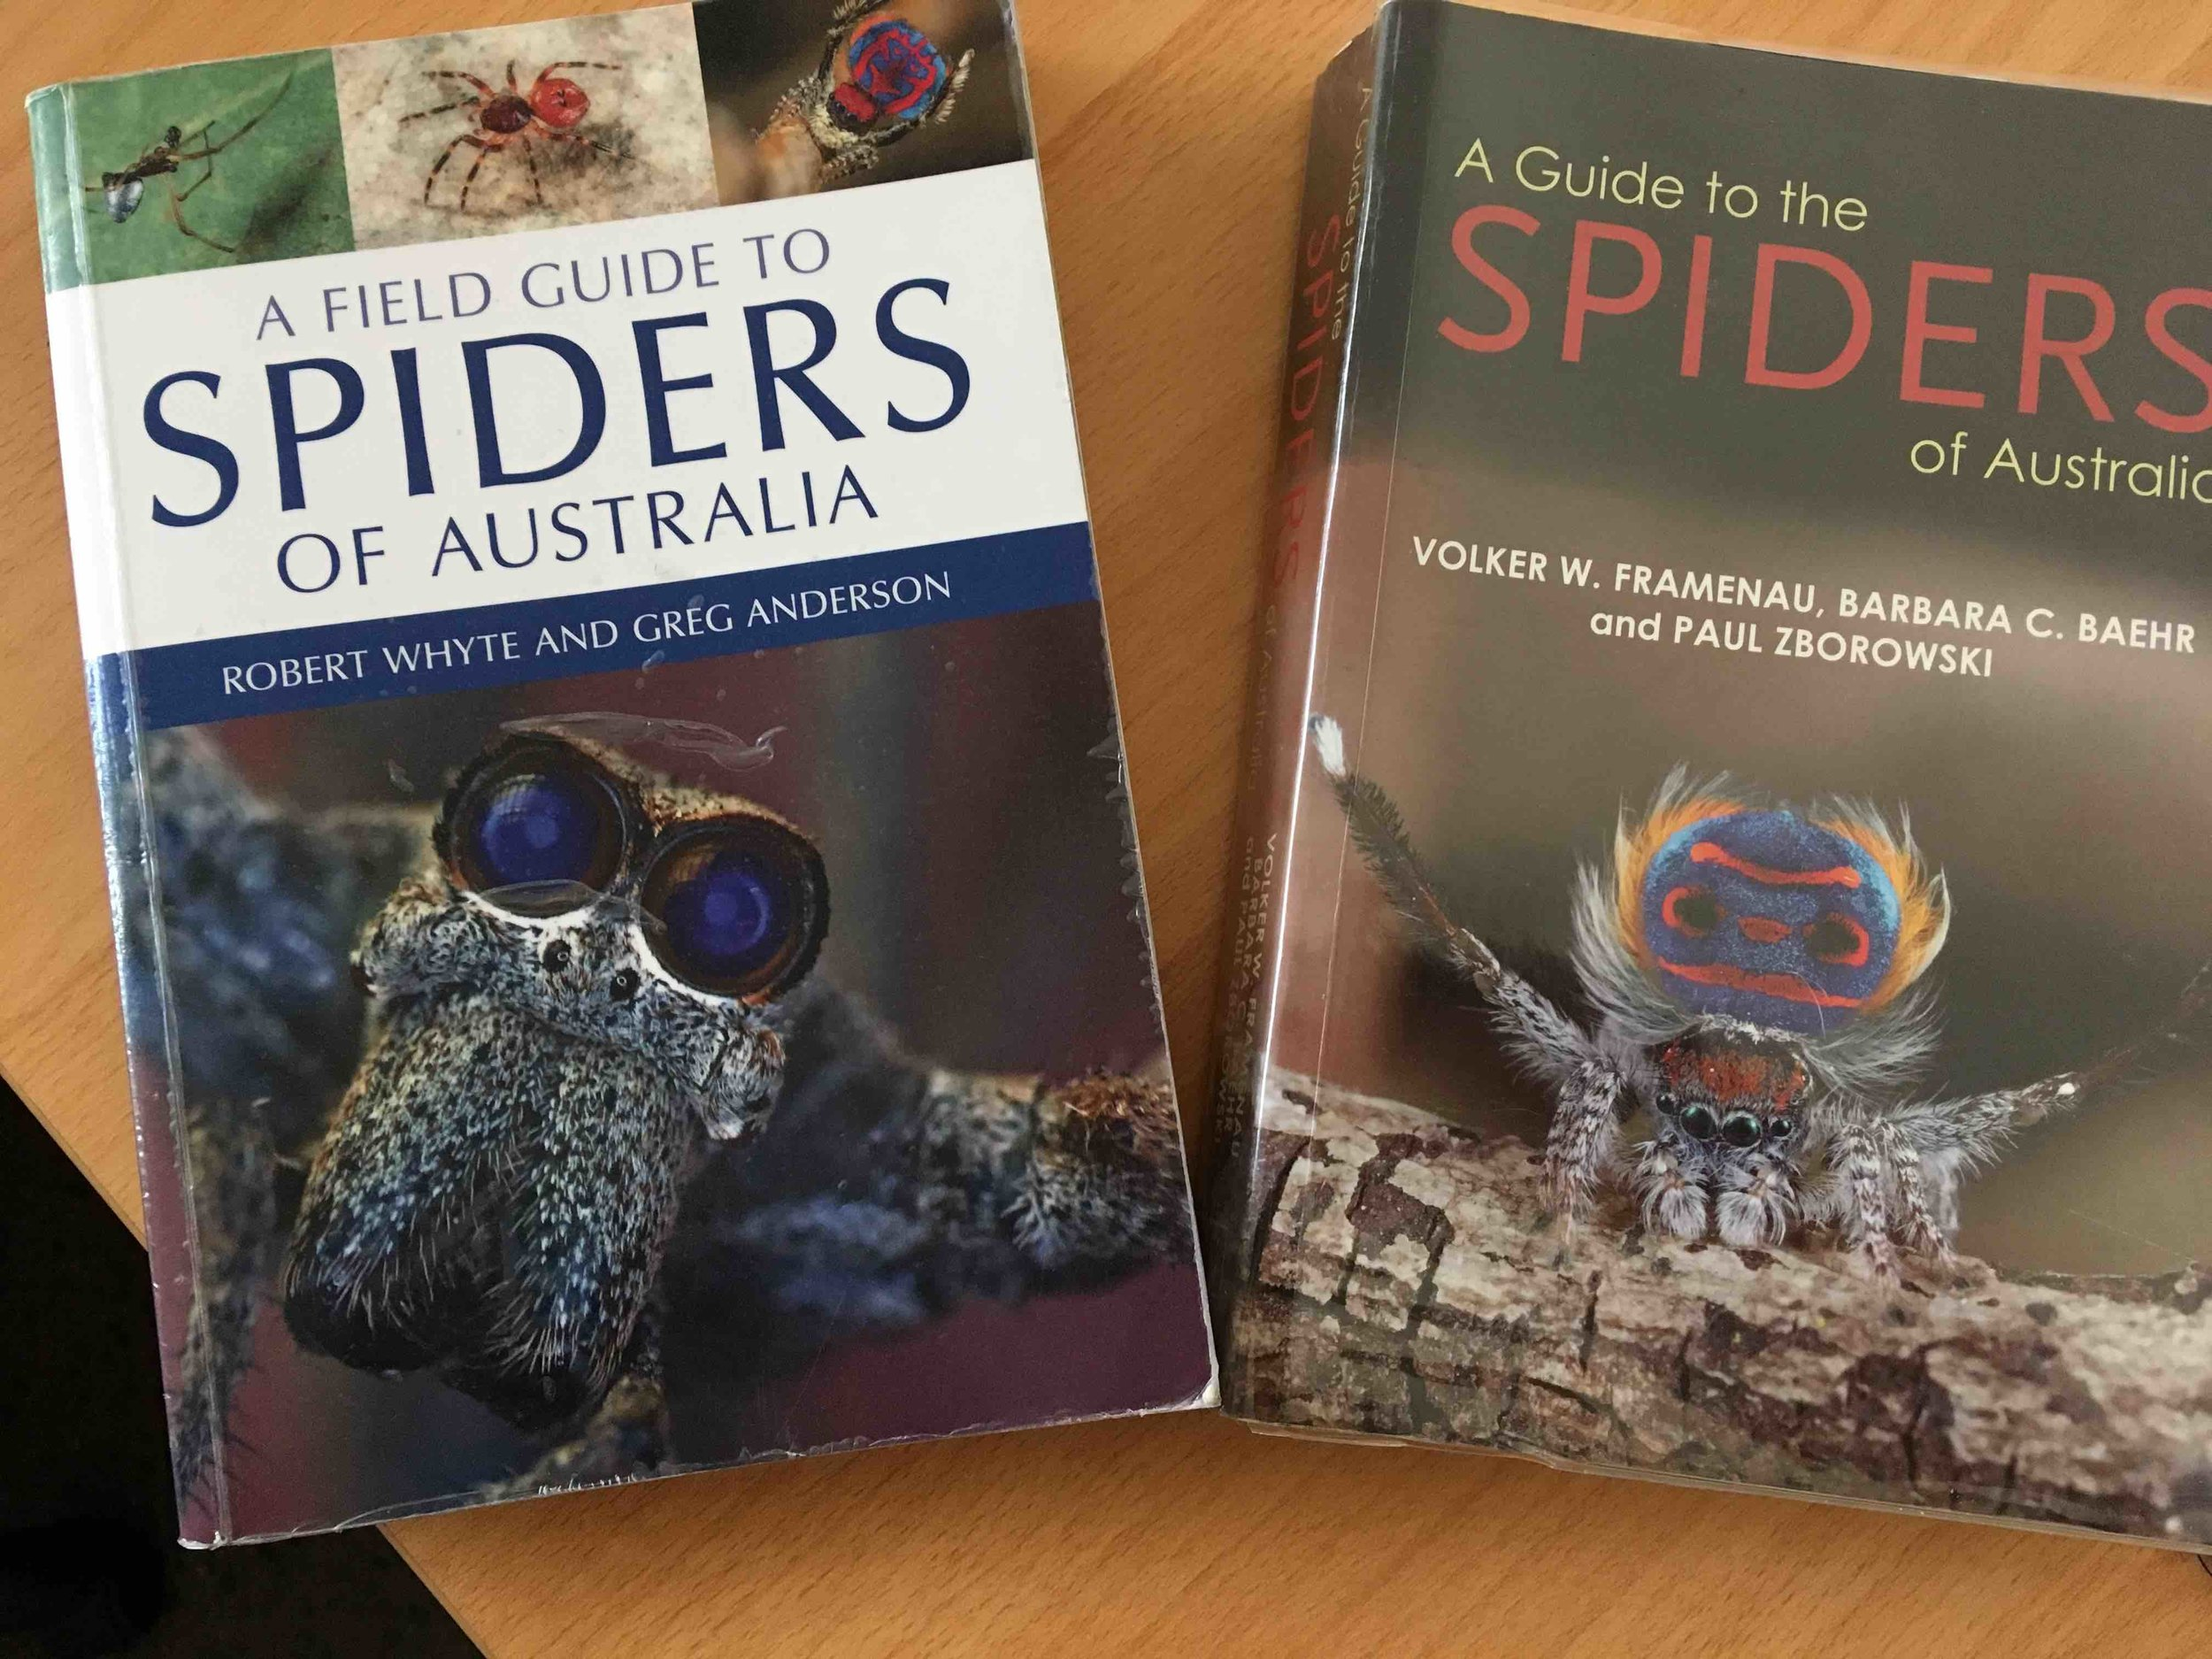 Two excellent books on Australian spider families - see reference section below for full details.